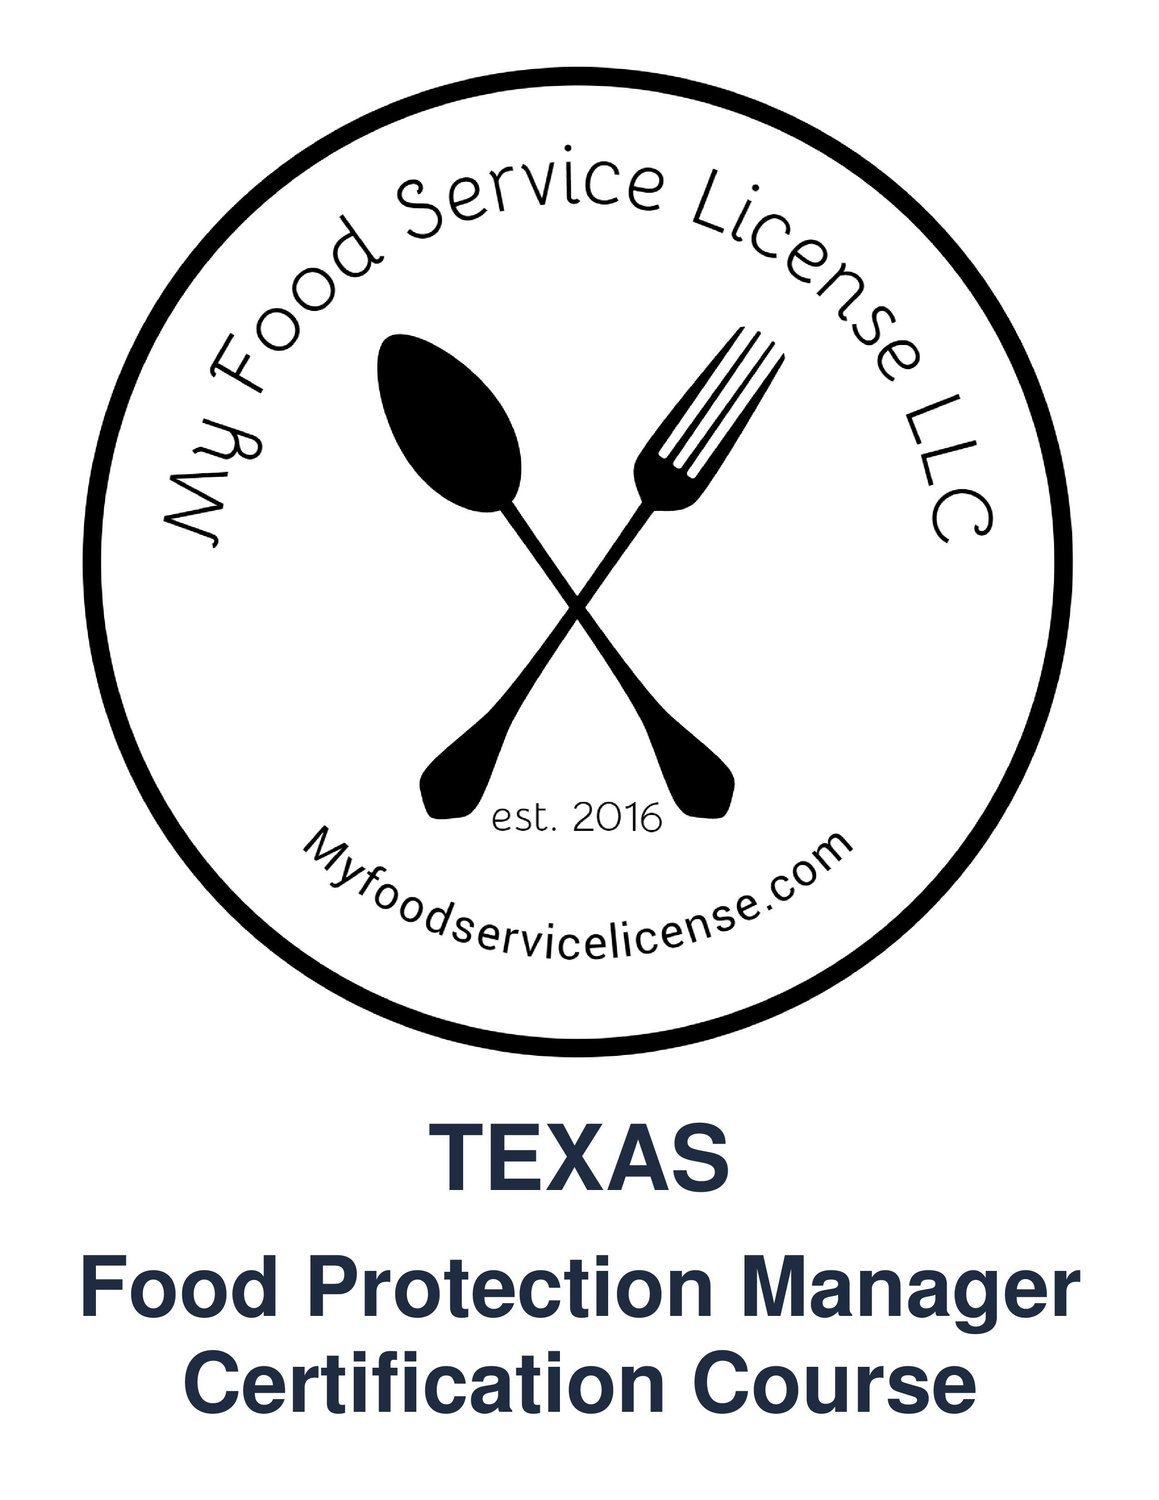 Texas - ONLINE Food Protection Manager Certification Course